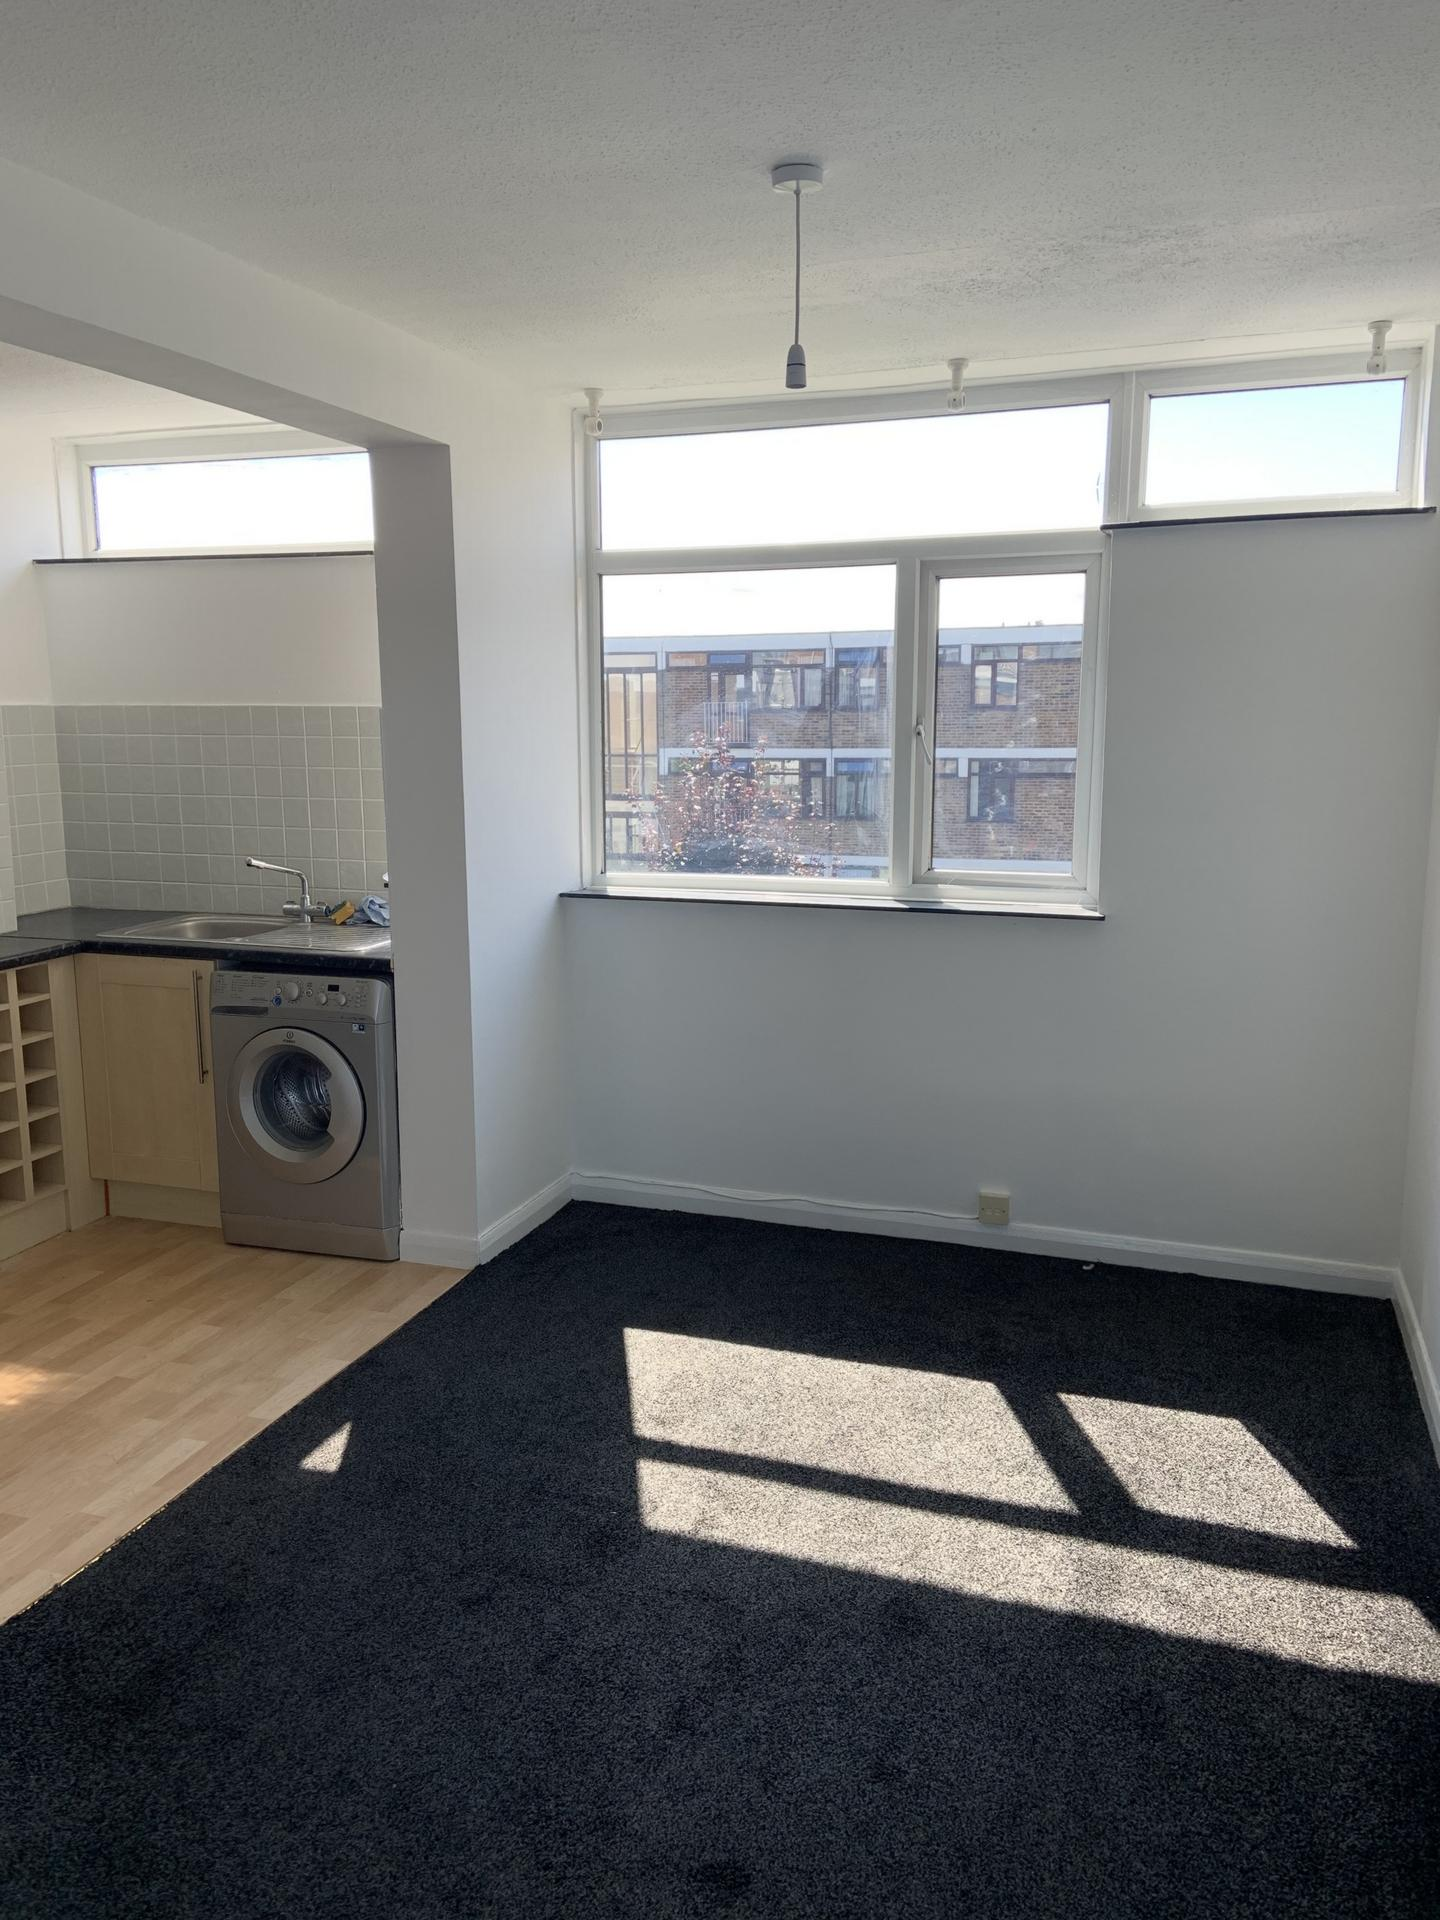 2 bed flat to rent in Carmel Court, Birchington, CT7